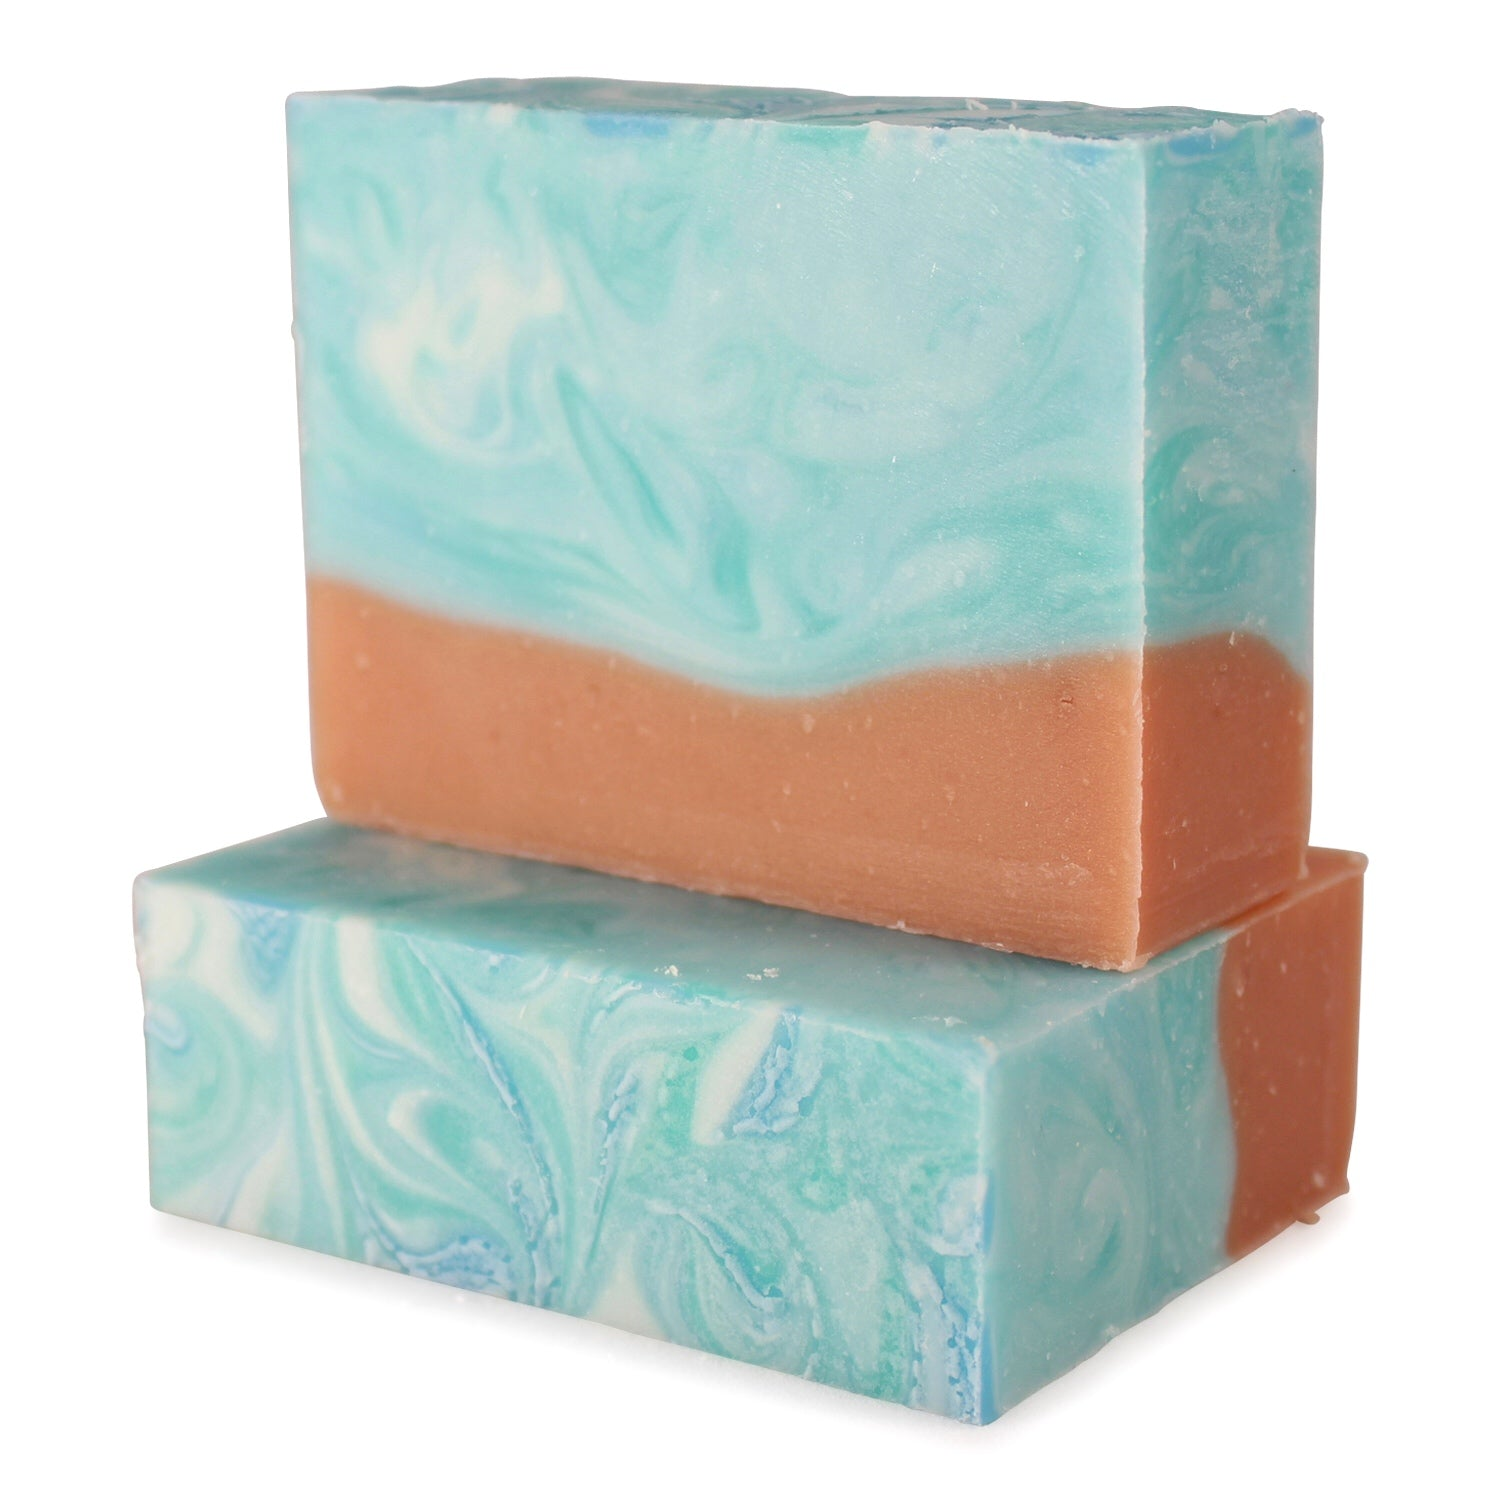 Seaside Soap | water lily, apple blossoms, sandalwood + bergamot - Canard Labs  handcrafted, all natural bar soap made in Oregon. Bar soaps and bath body products made with quality ingredients.